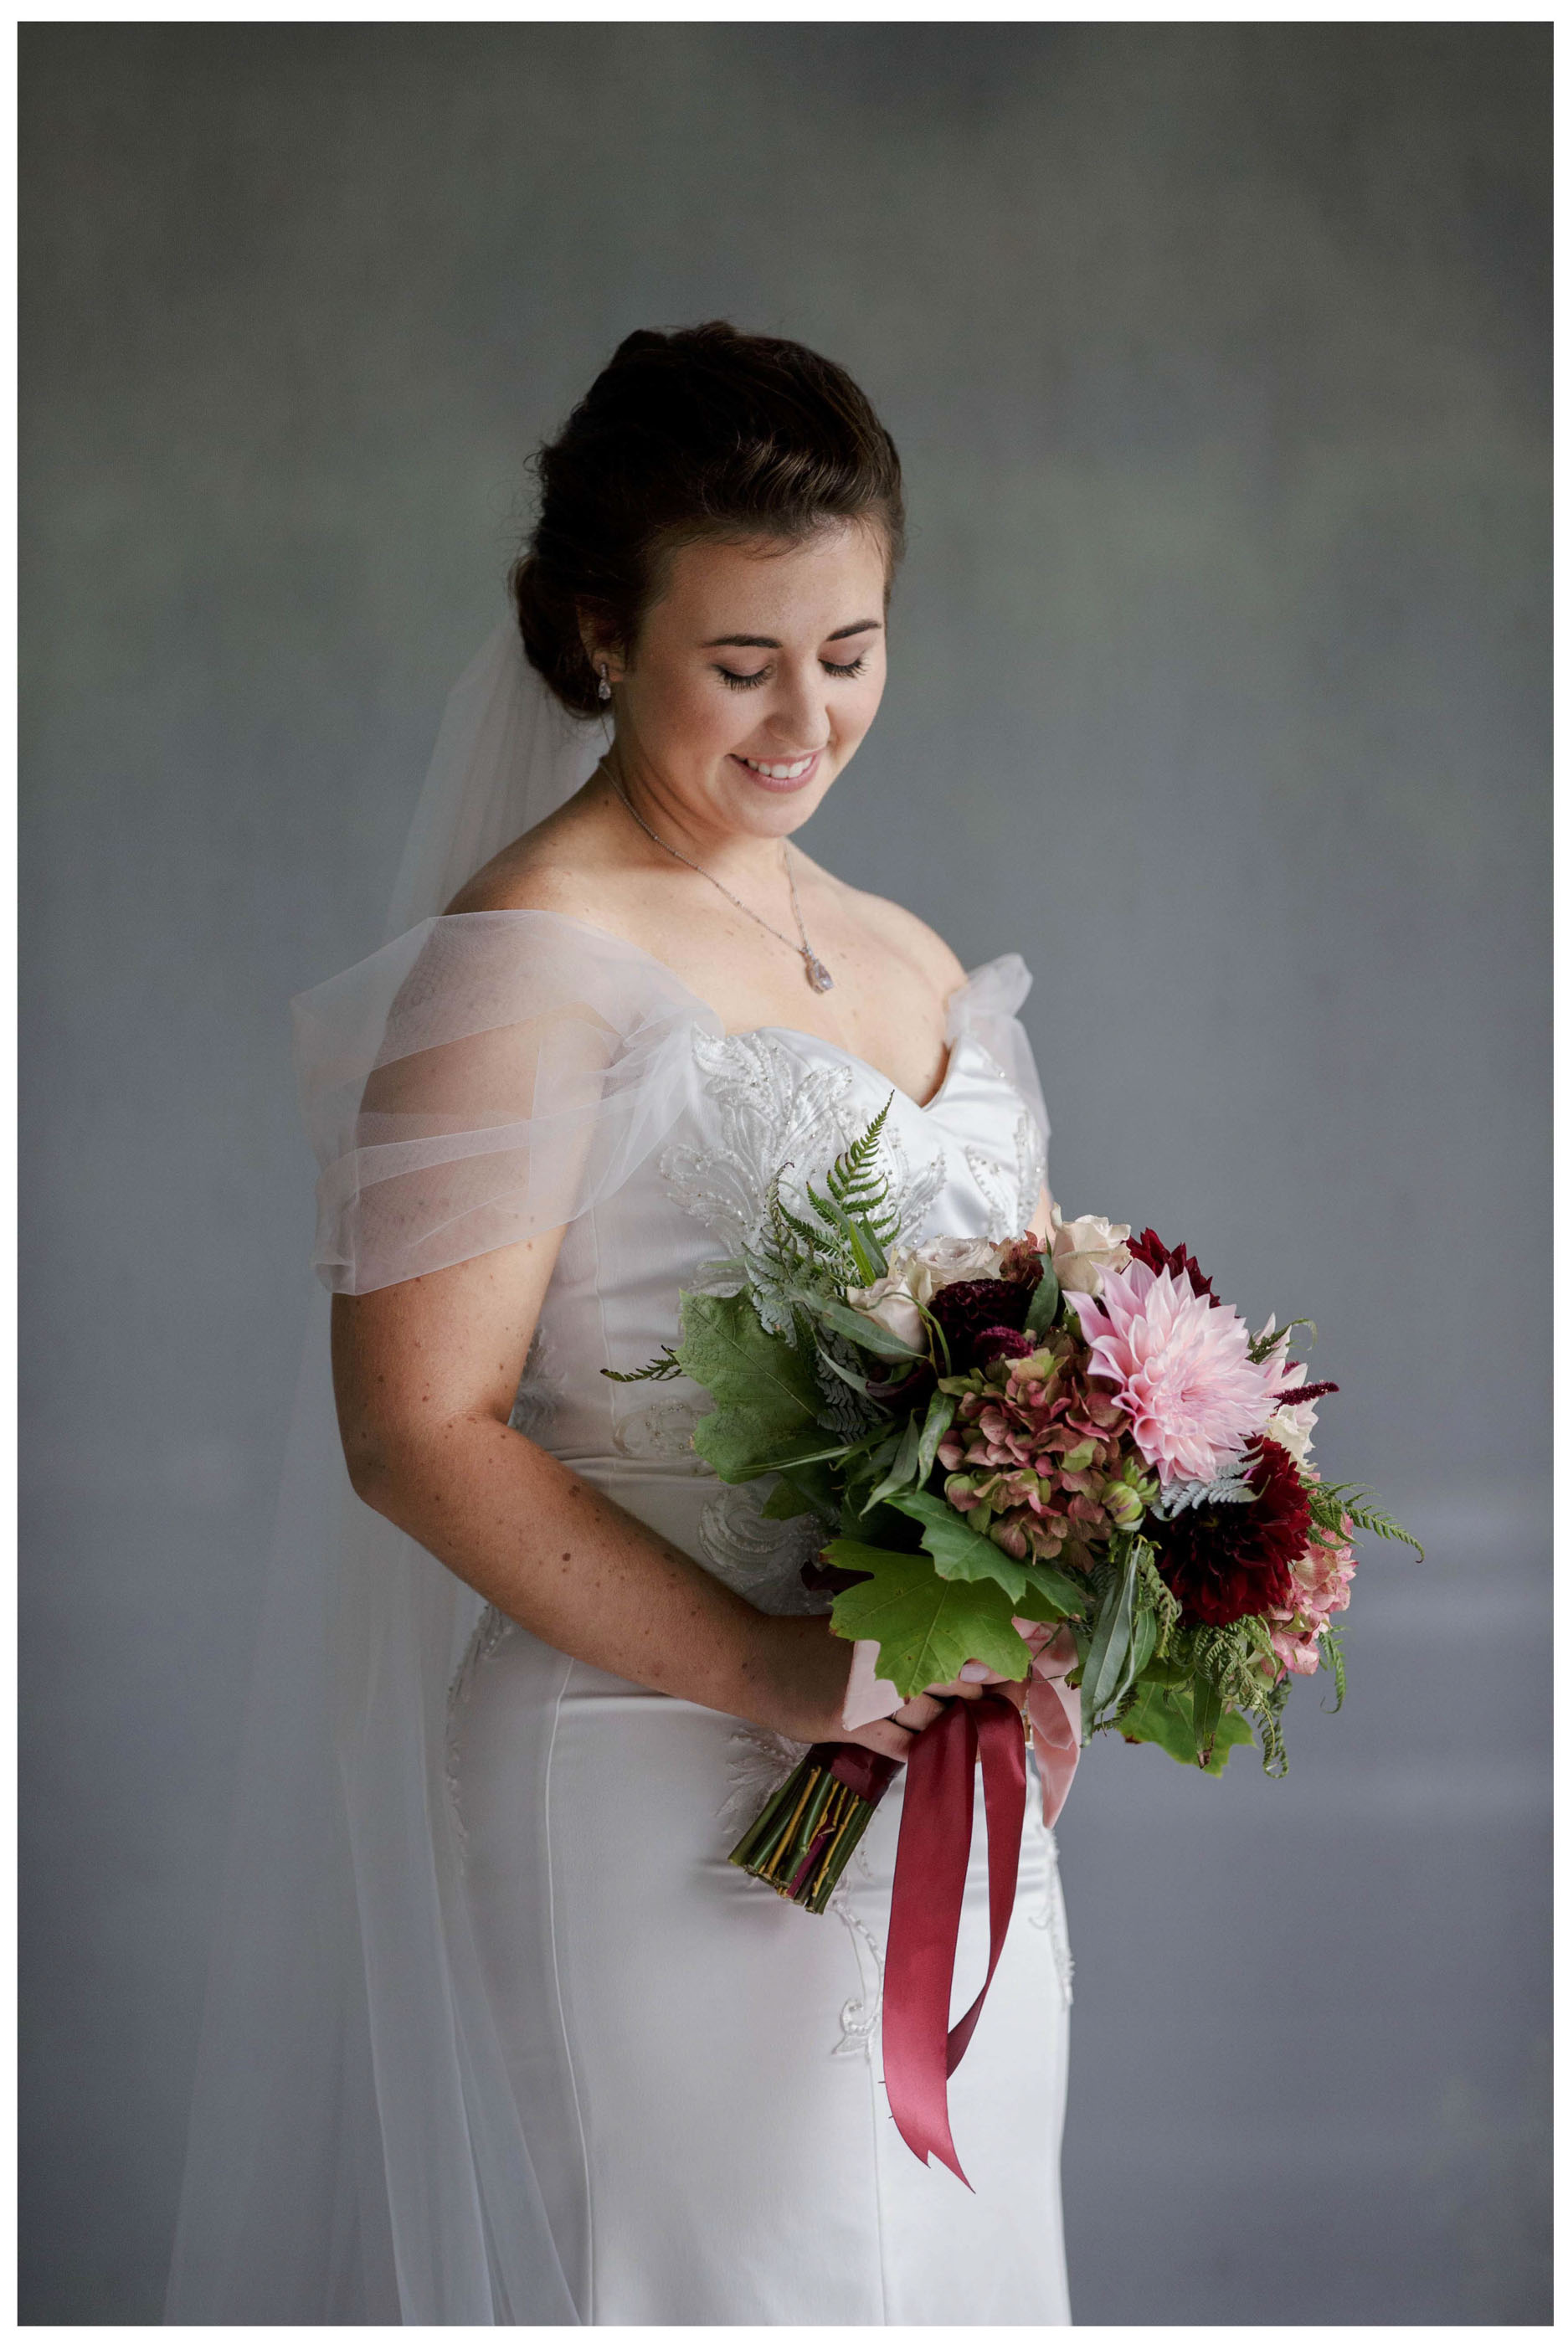 Kumeu Bride in lacetop wedding dress poses with her wedding bouquet , Laf and Honey